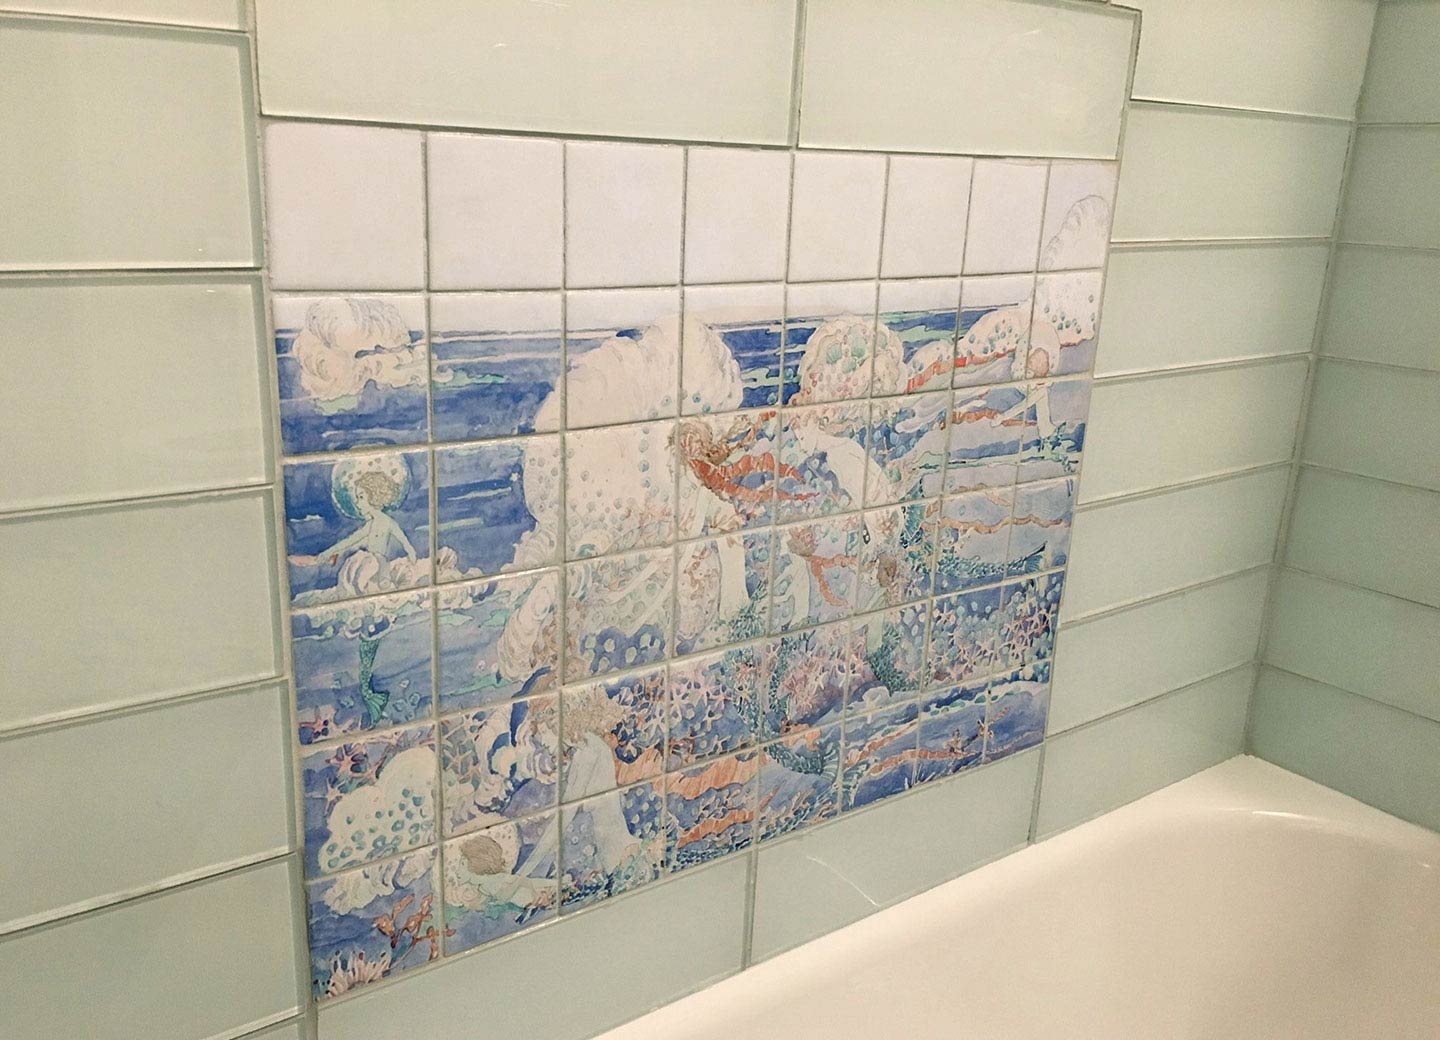 Mermaid backsplash installed in bath